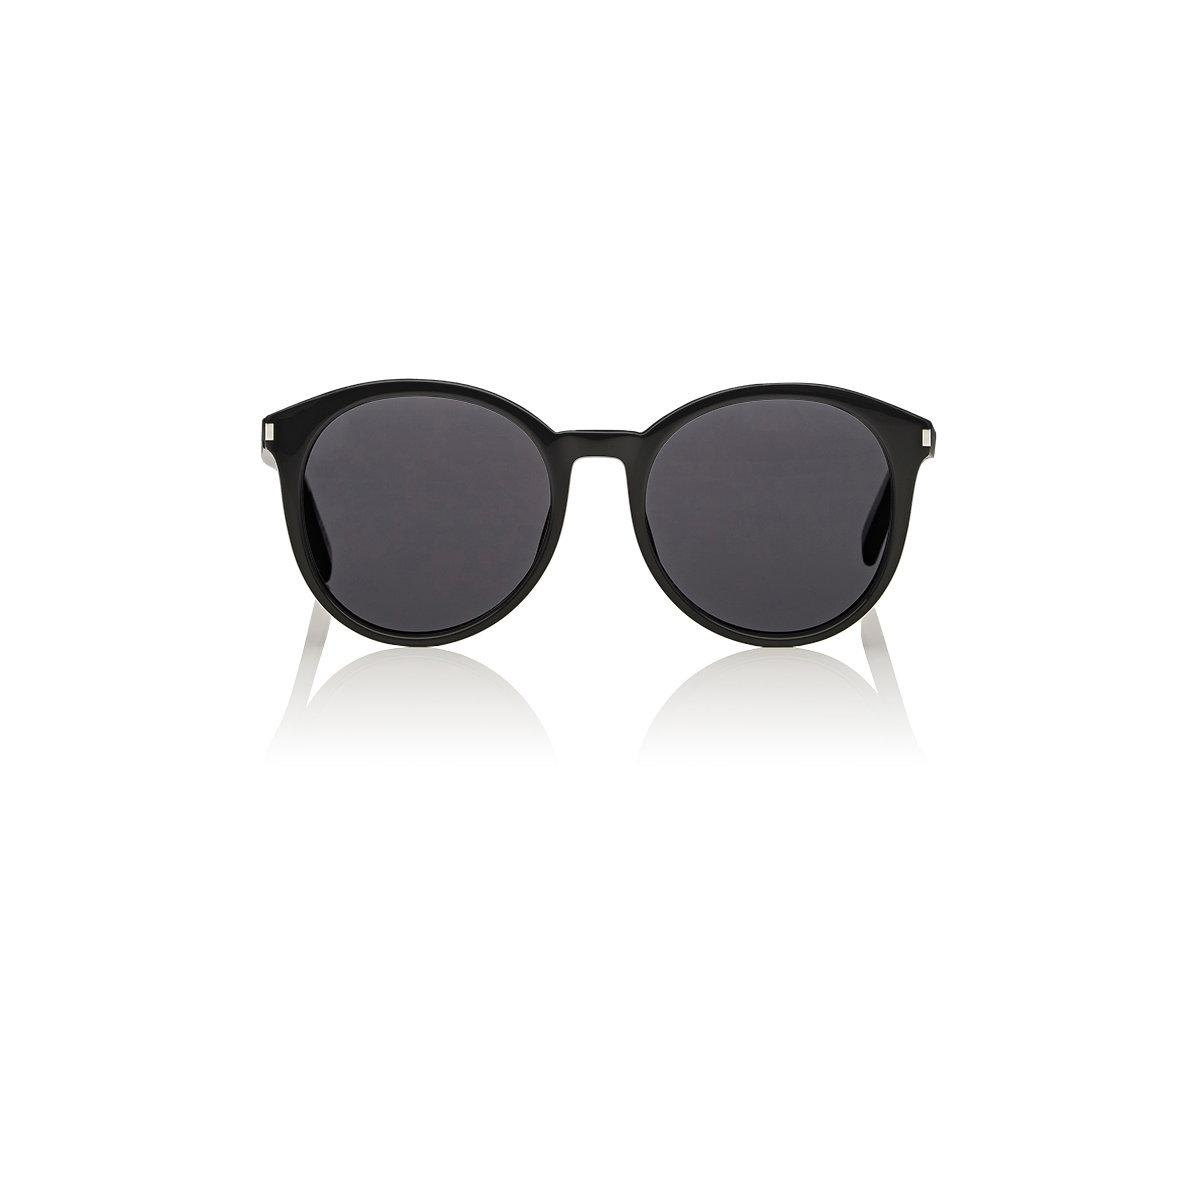 c82dcbeb2da1b Lyst - Saint Laurent Classic 6 Sunglasses in Black